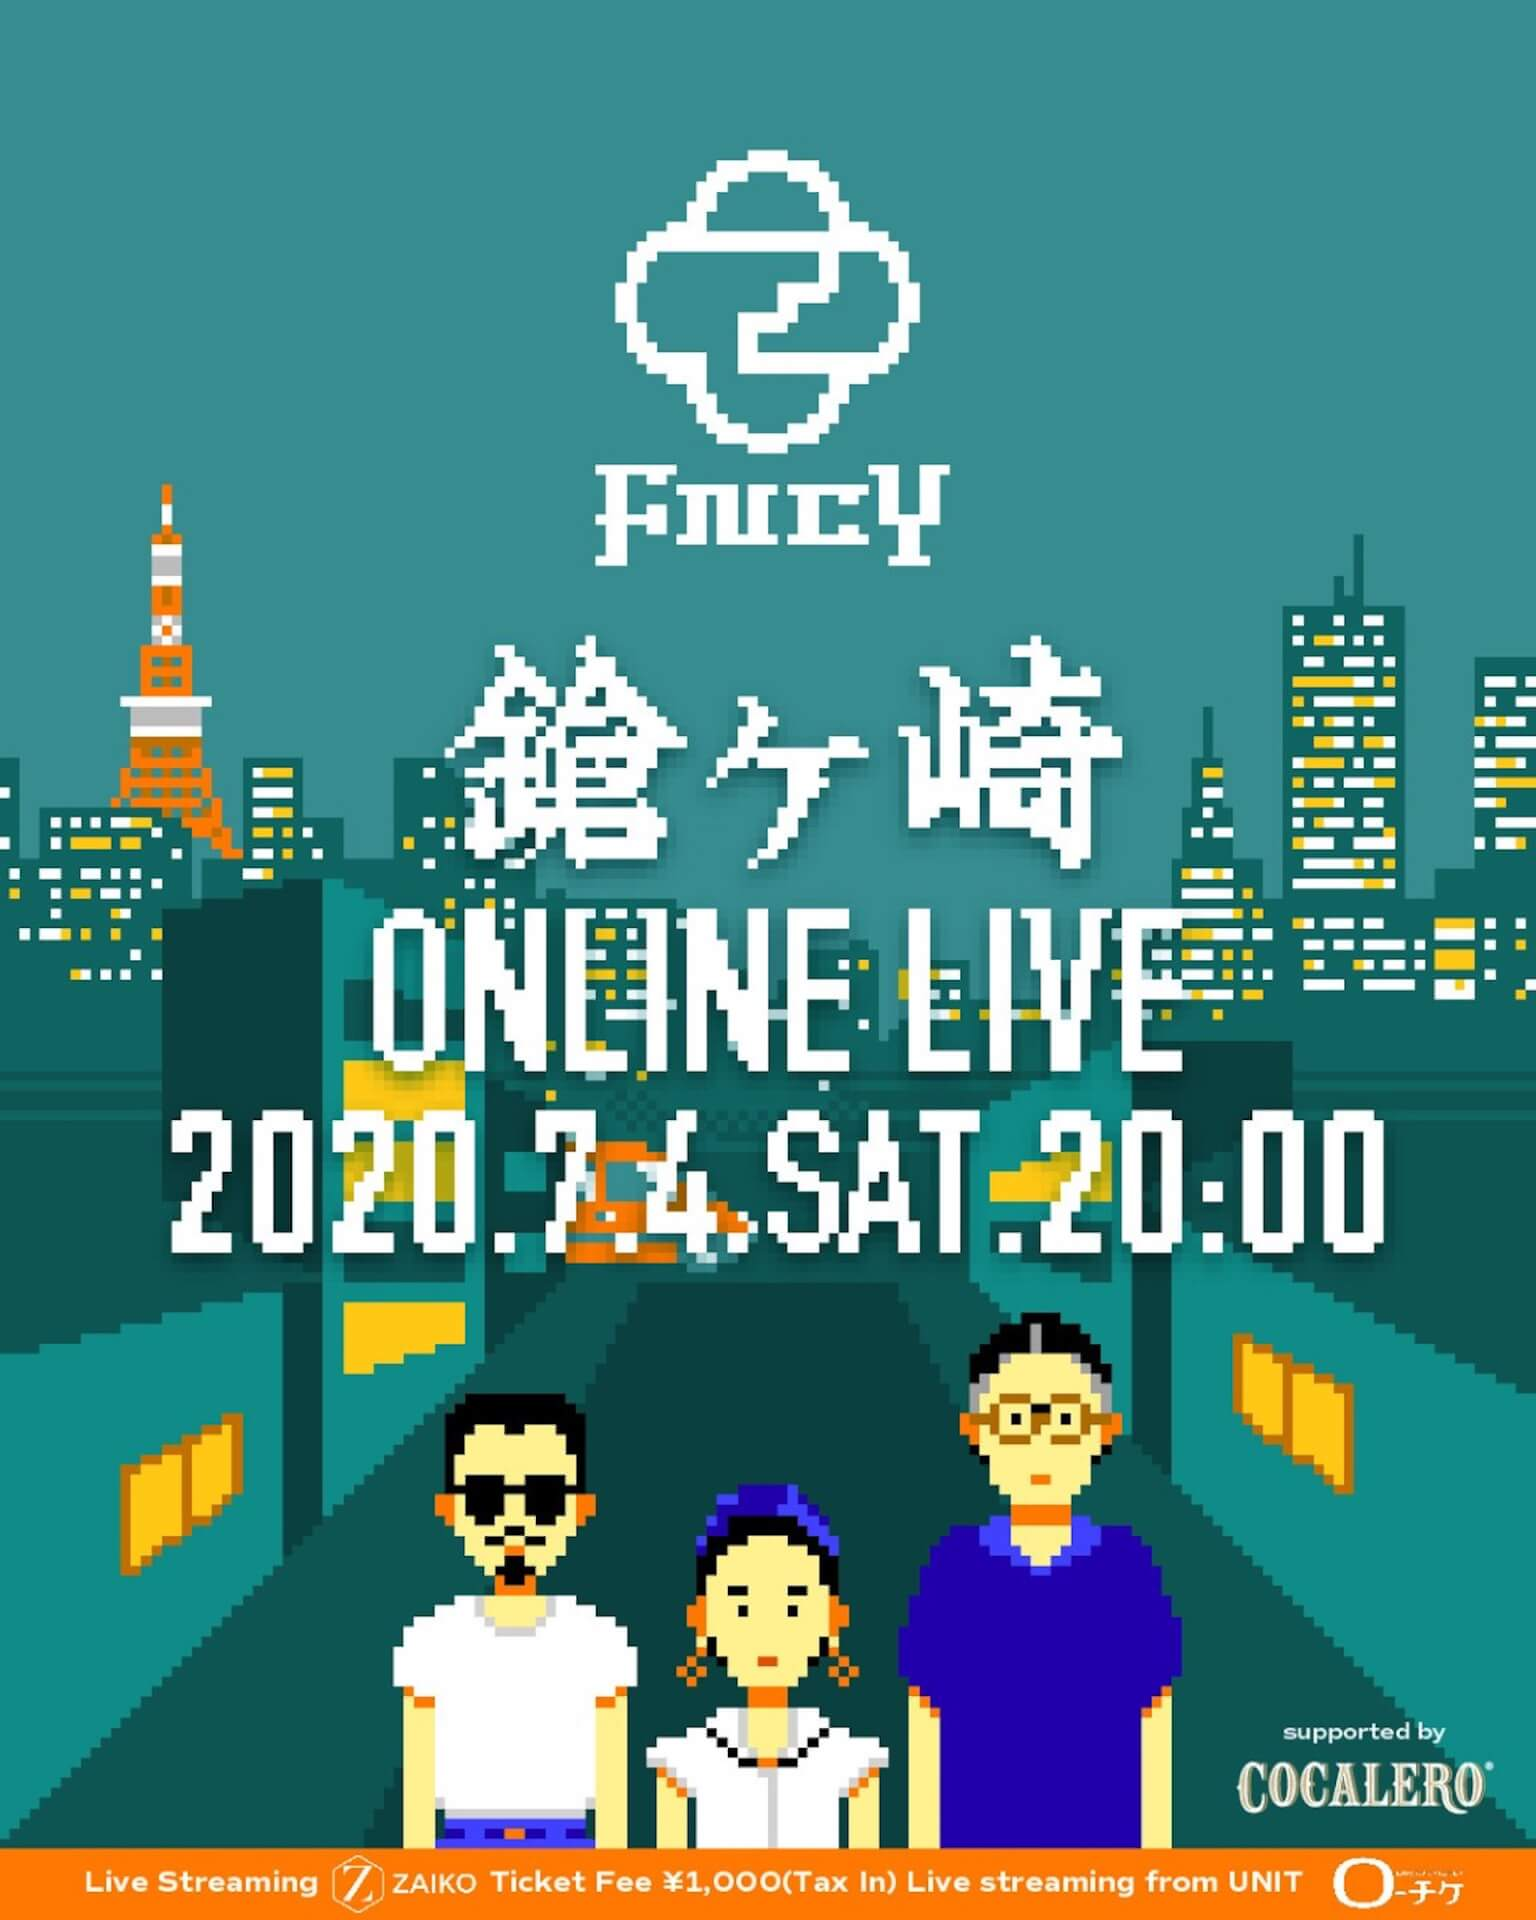 """FNCYが7月4日にストリーミングライブ<FNCY 槍ヶ崎 ONLINE LIVE supported by COCALERO>を開催!""""REP ME""""のMVも公開 3a313ba134e38ad6ed695ca91830b2dd"""